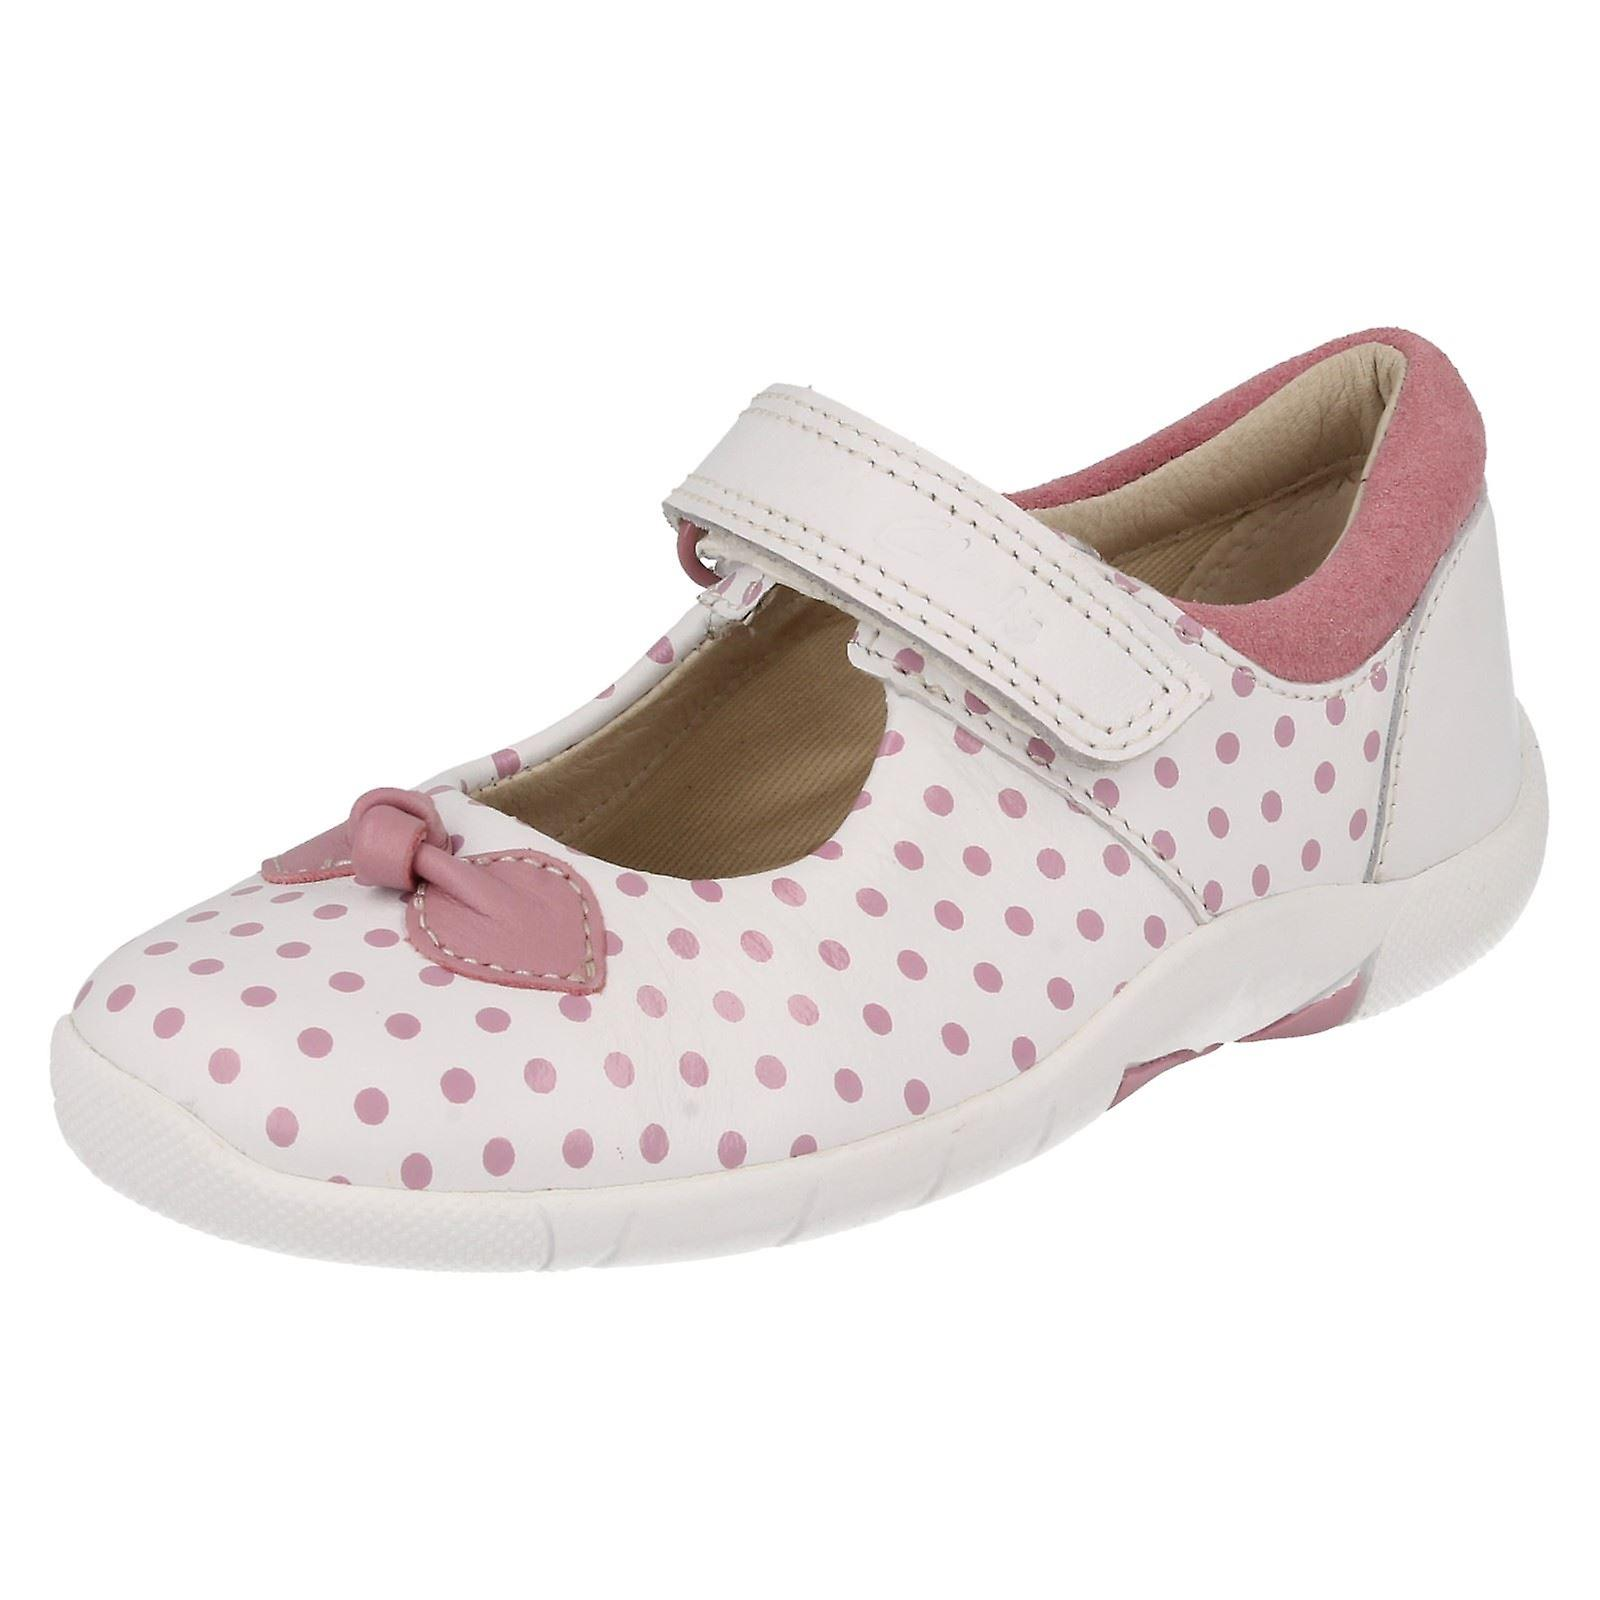 Girls Clarks Polka Dotted Shoes with Bow Design Binnie Dots